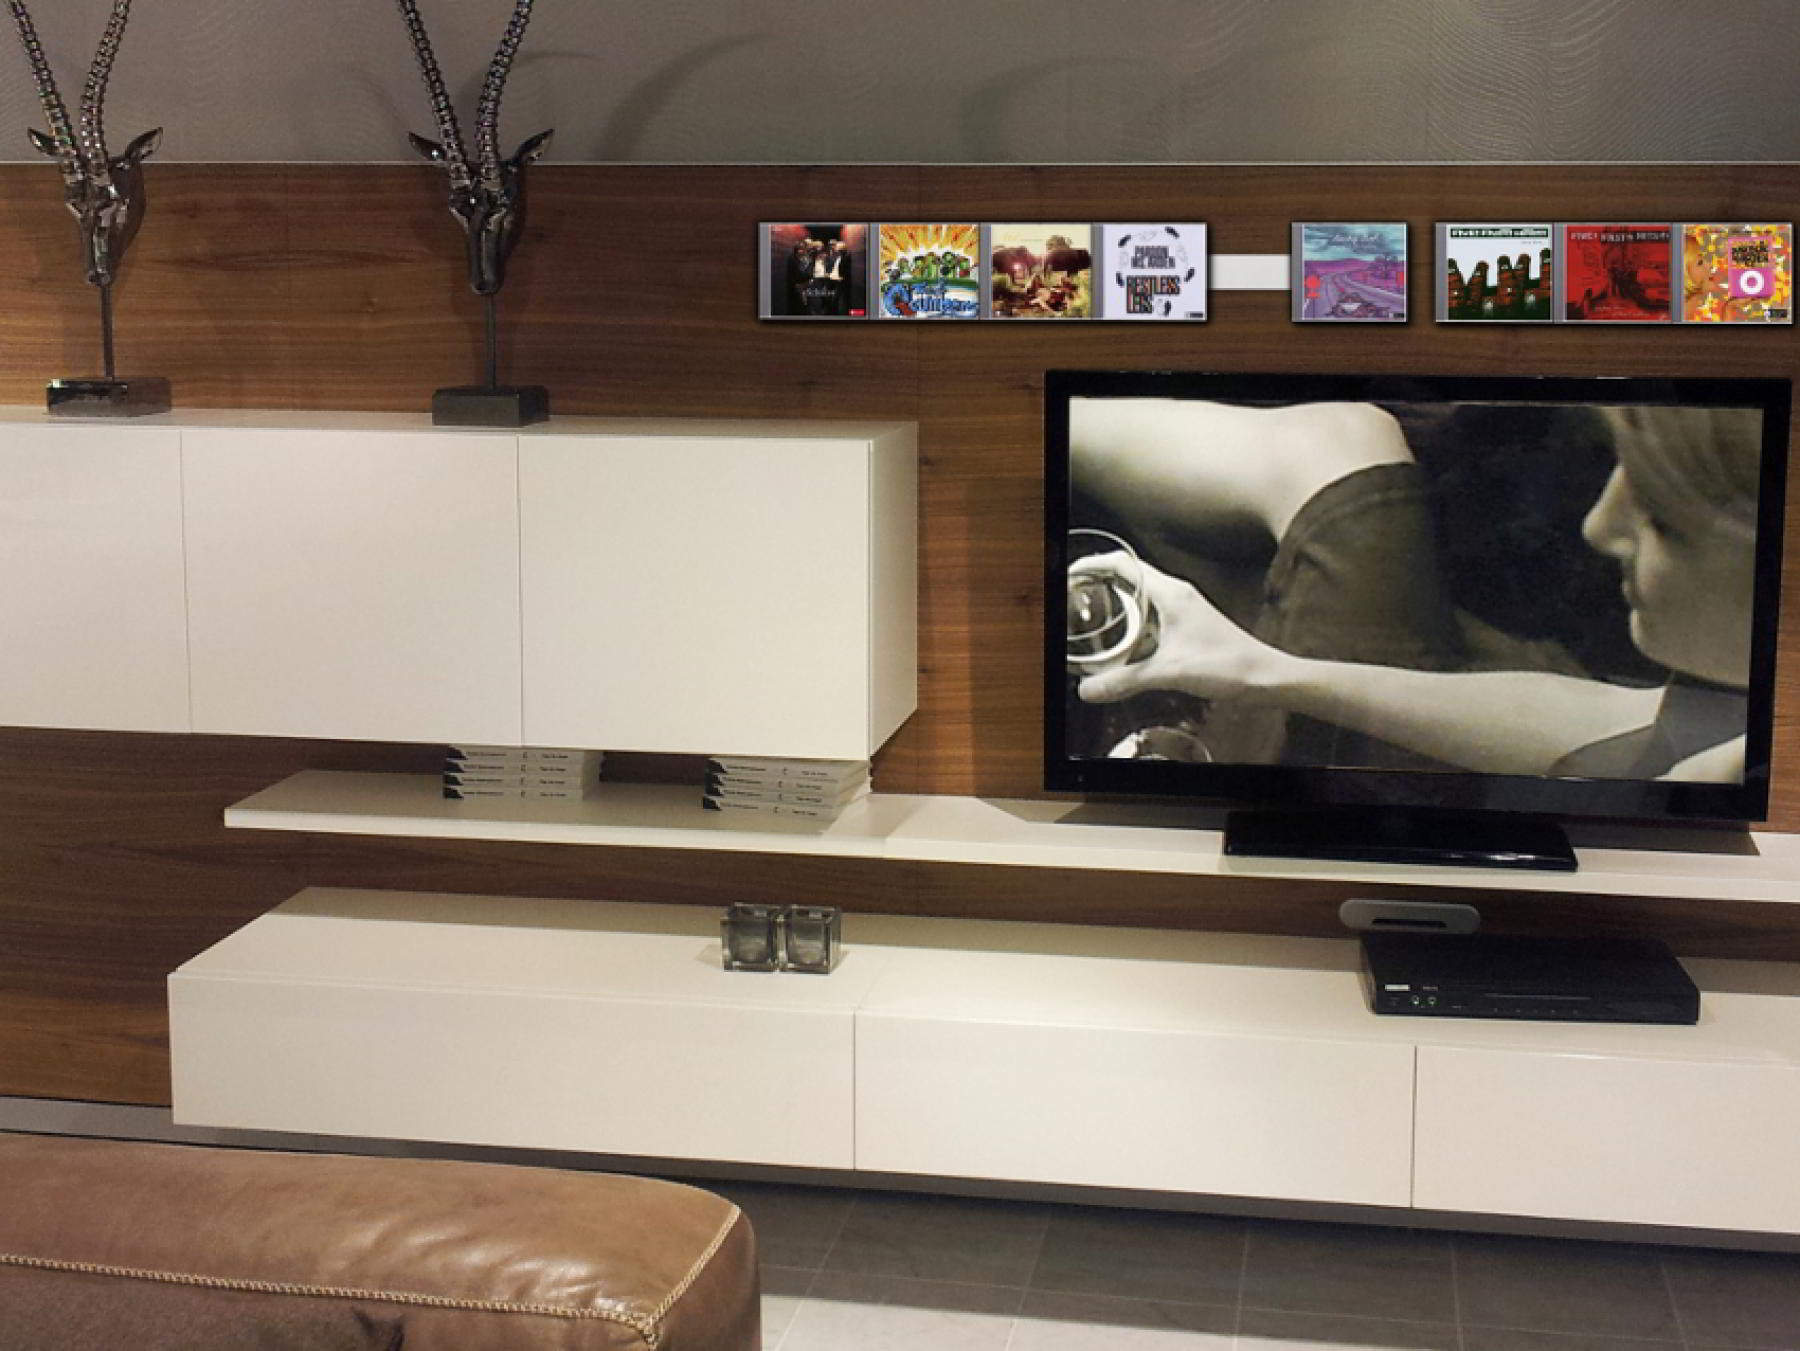 The image shows several horizontally arranged side by side CD Wall Shelves CD Wall1x3 flat arranged over the flat screen